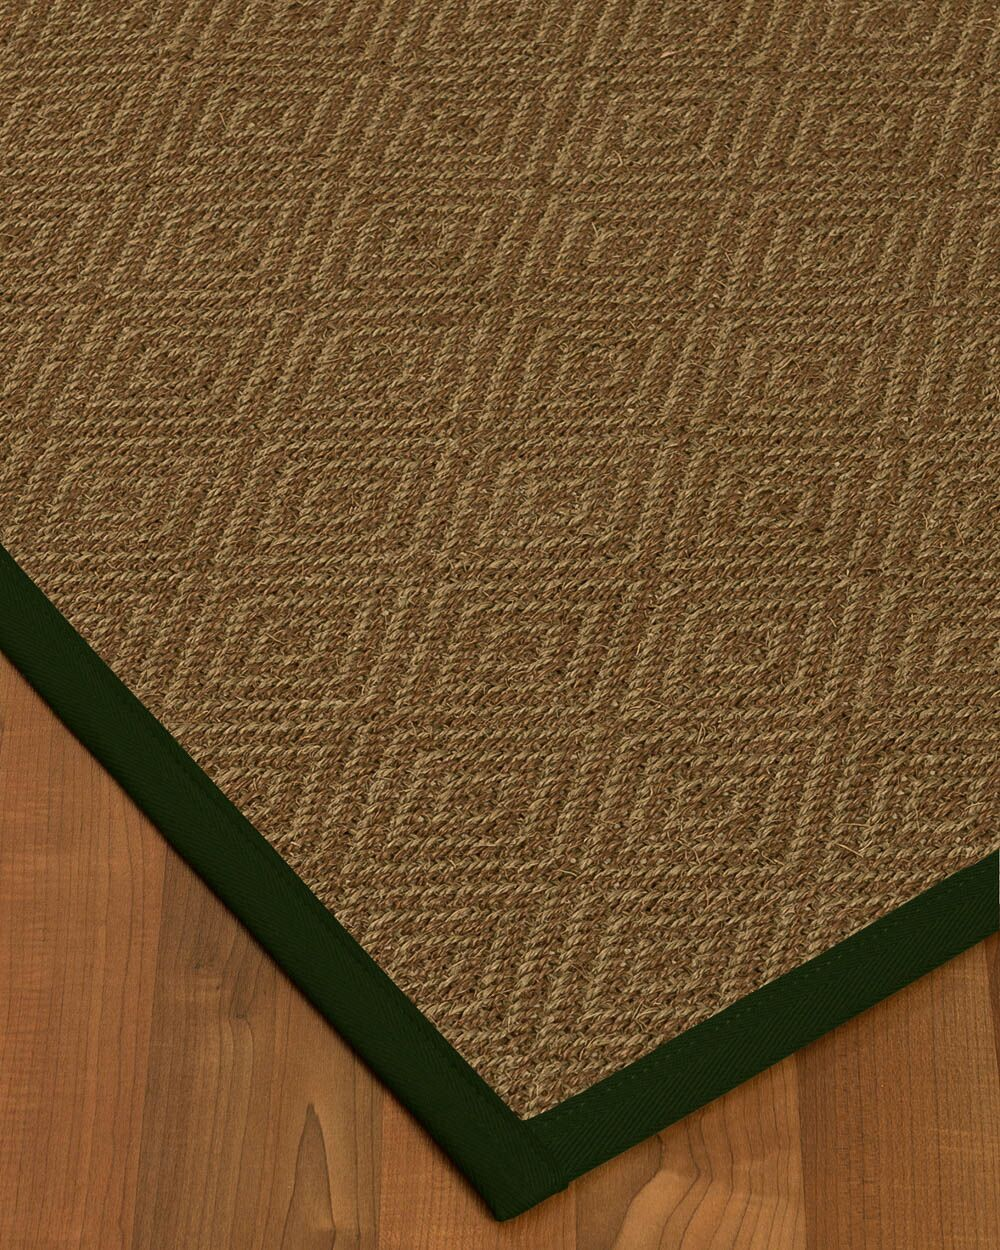 Keown Border Hand-Woven Brown/Black Area Rug Rug Size: Rectangle 8' x 10', Rug Pad Included: Yes